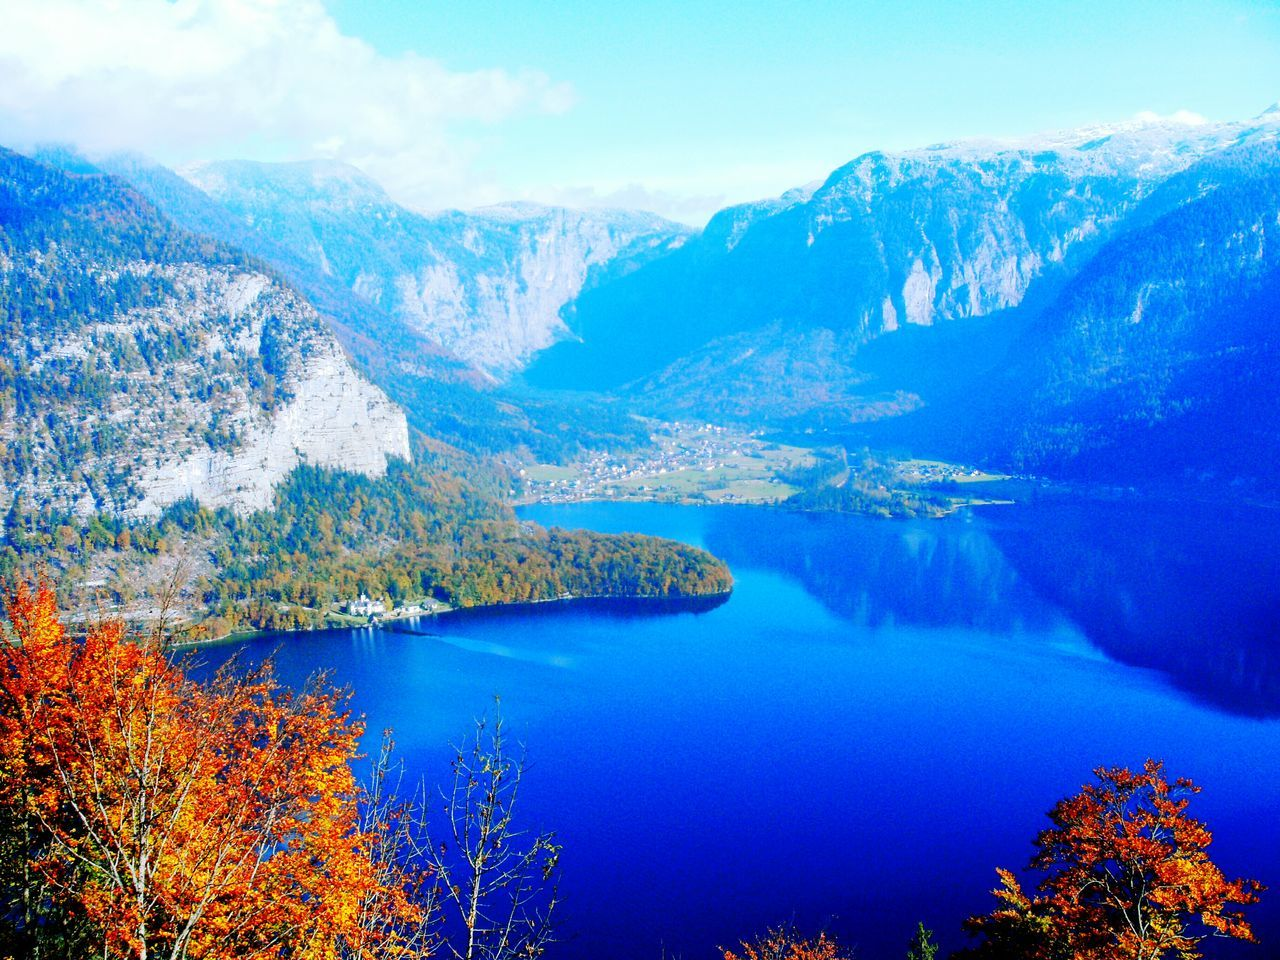 The Great Outdoors With Adobe Obertraun Travel Photography Lake View Lakeshore Lake Seen Landscapes Landschaft Beauty In Nature Reisefotografie Scenics Landscape Landscape_Collection Landscape Scenics Lakeside Mountains Mountain_collection Mountains And Valleys Mountainside Austria Alps Alpen Hallstätter See Hallstatt